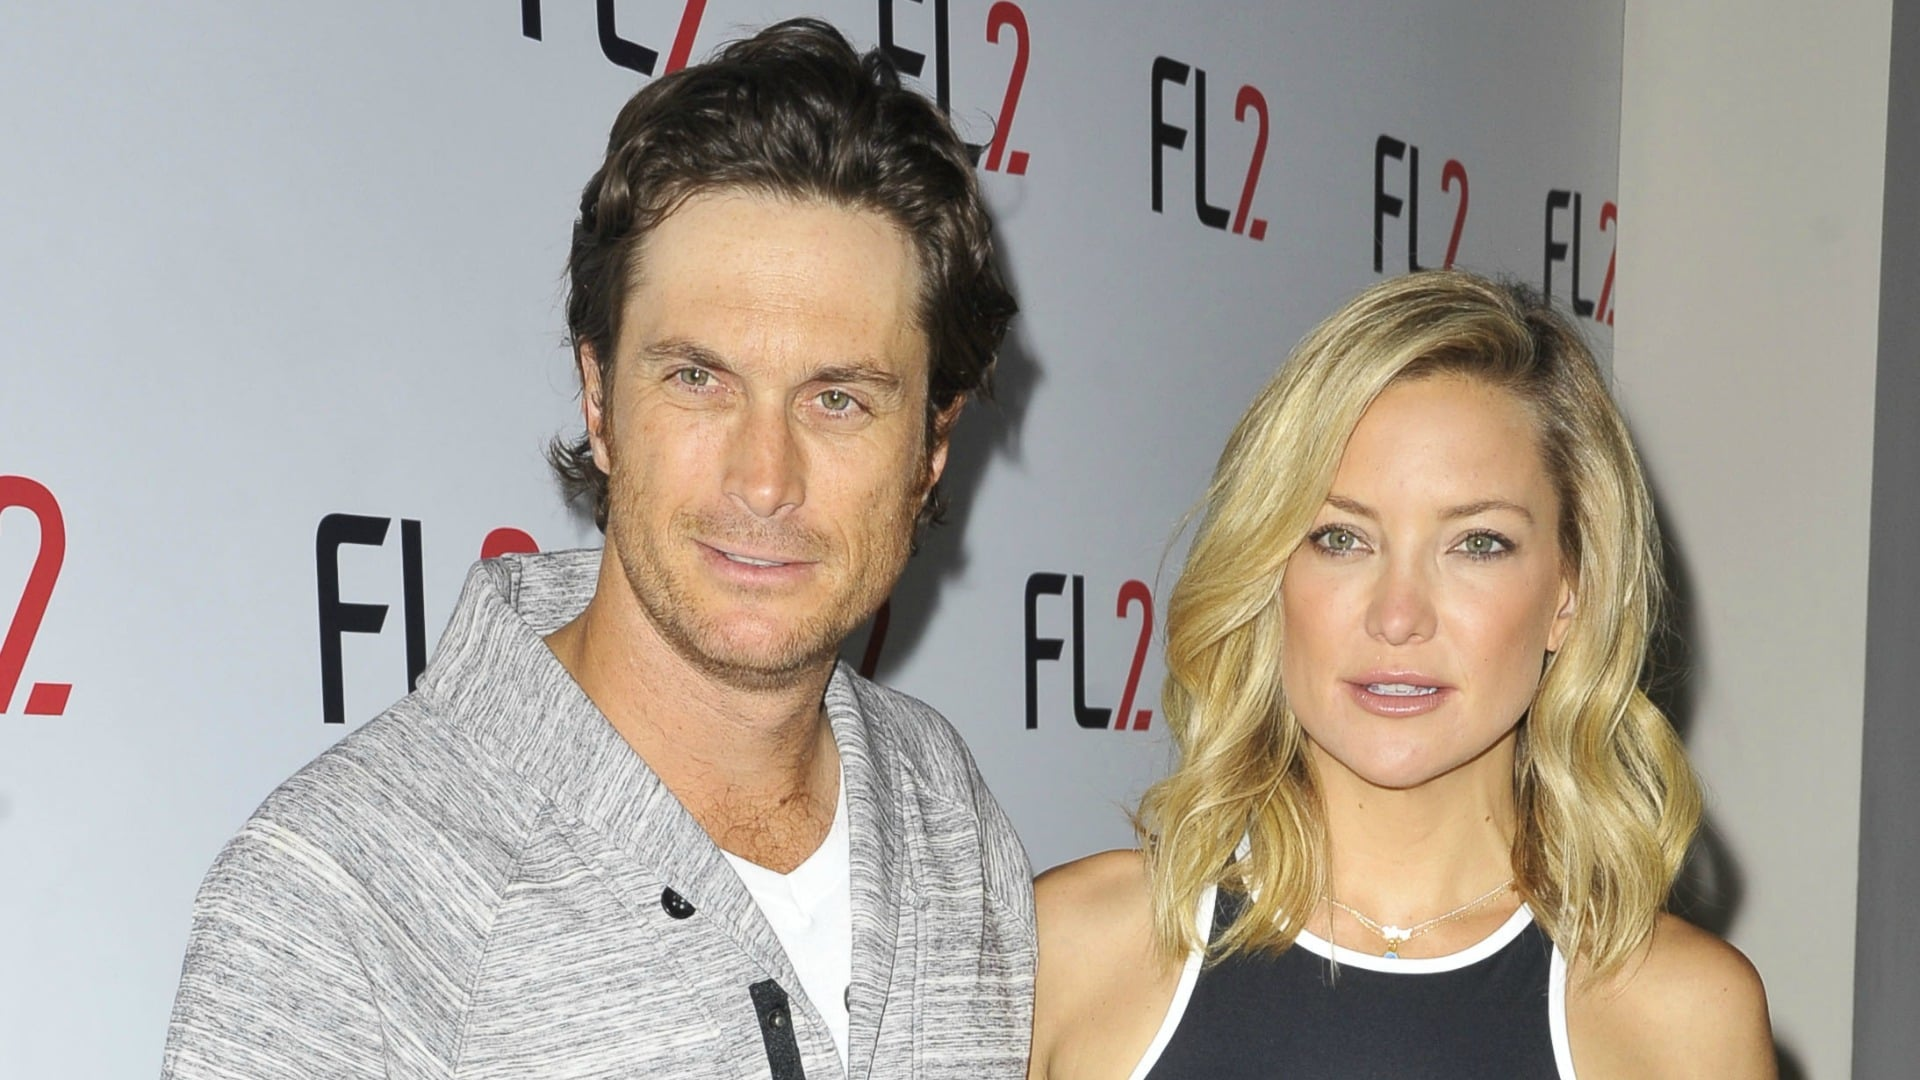 Kate Hudson's brother weighs in on the ridiculous Brad Pitt rumors